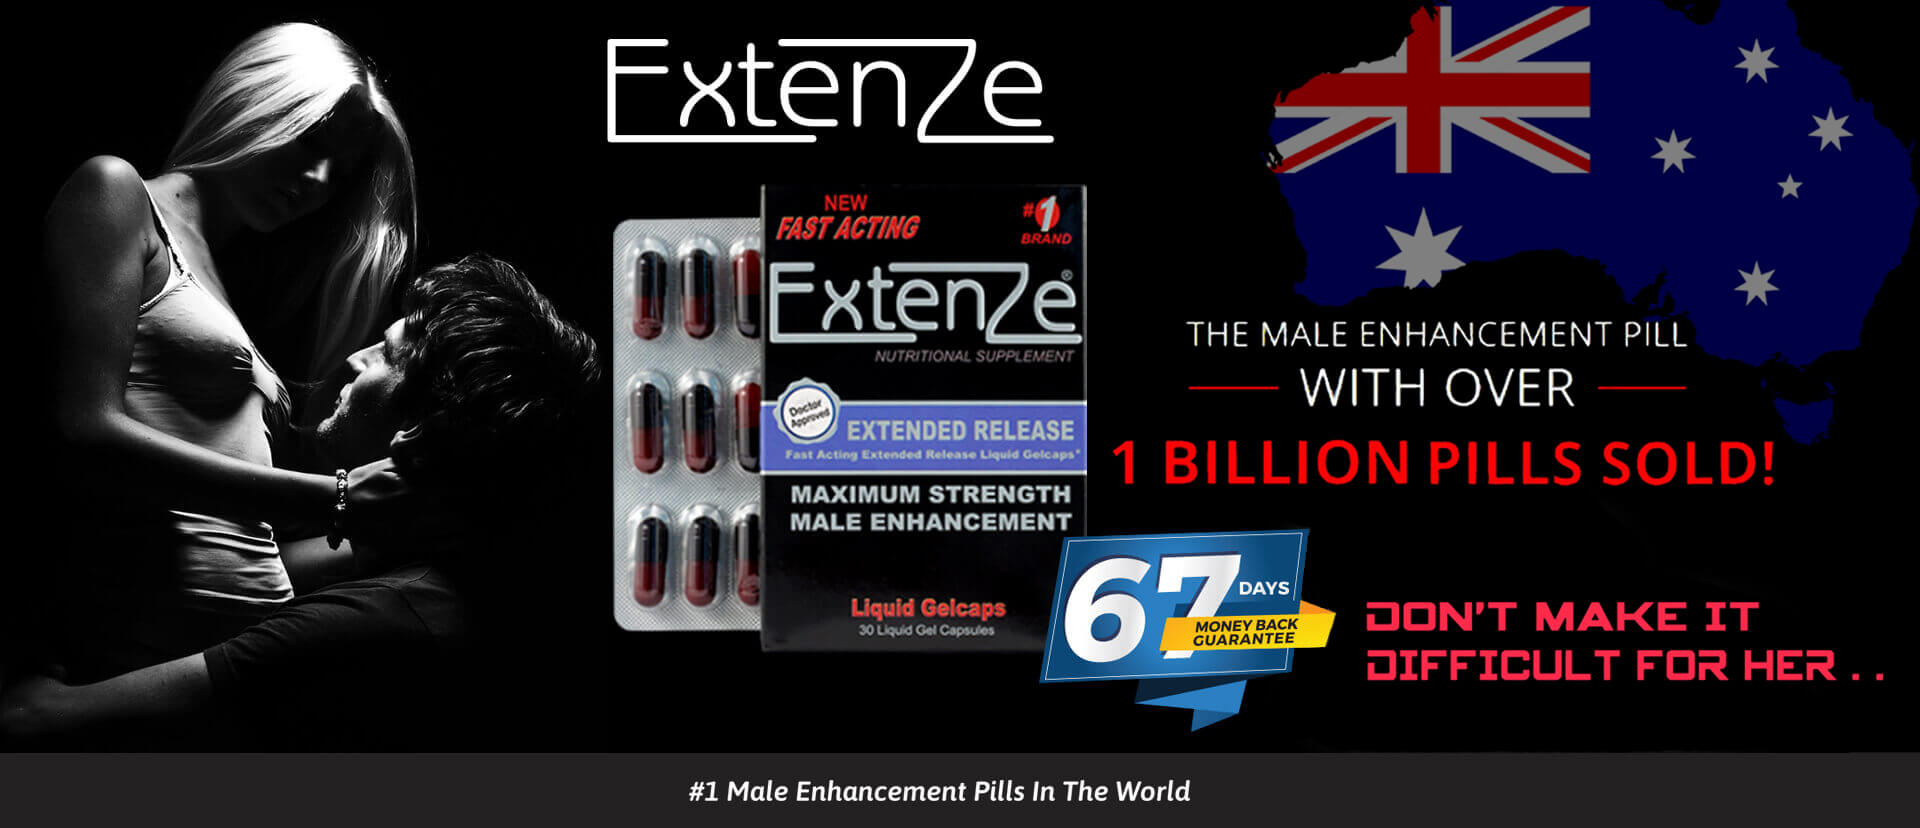 Extenze Male Enhancement Pills vip coupon code 2020